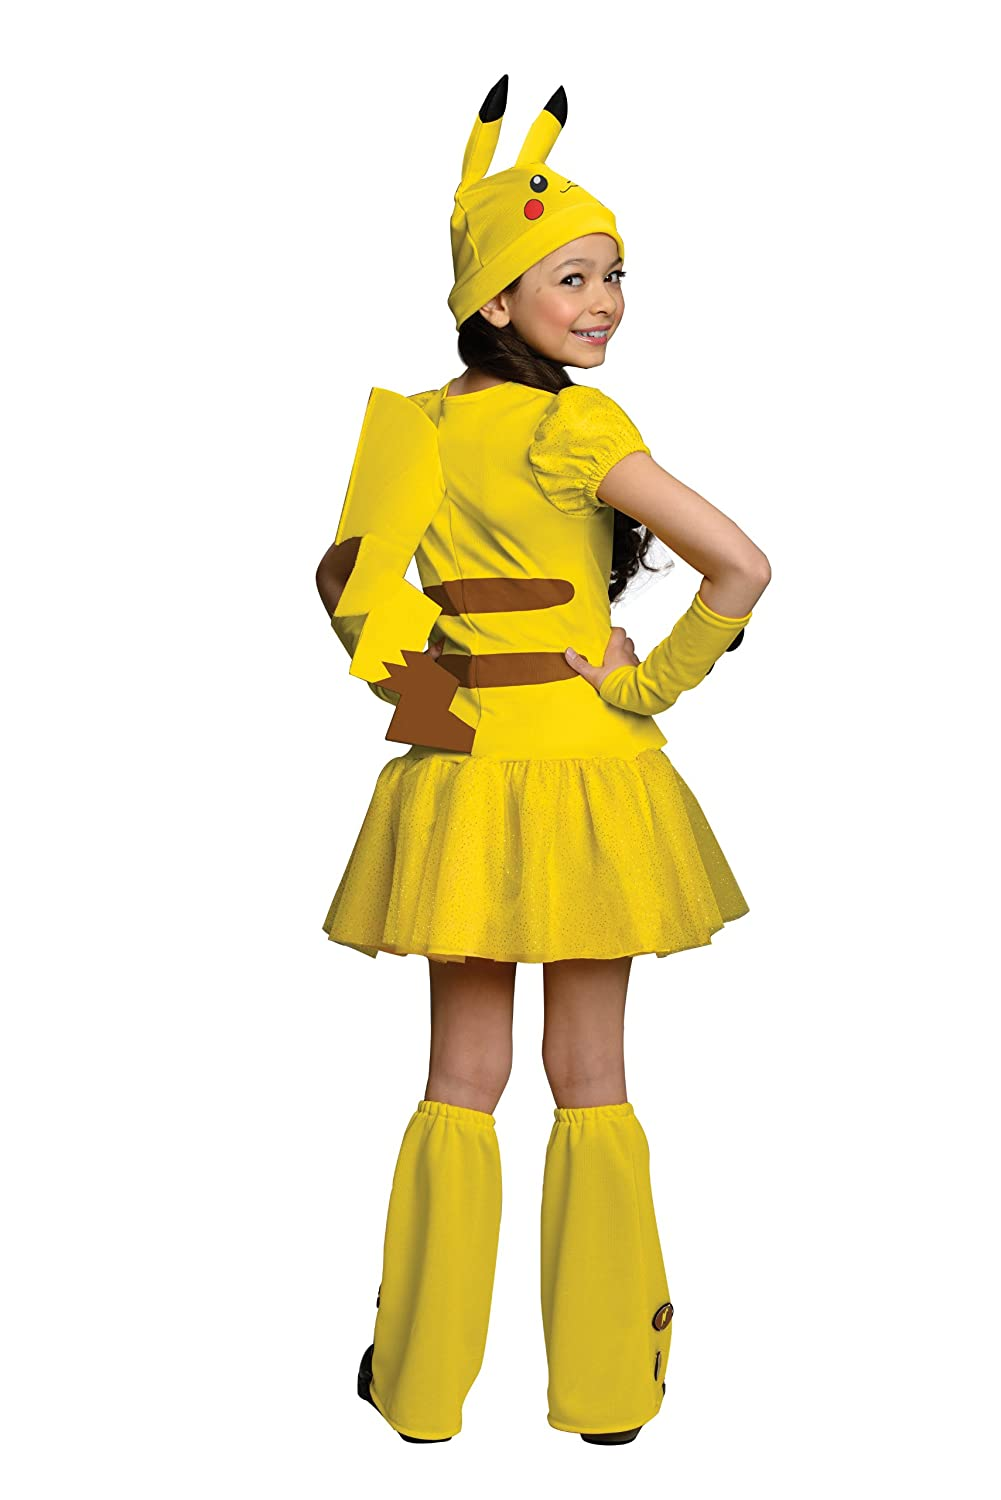 costume girls Pokemon pikachu